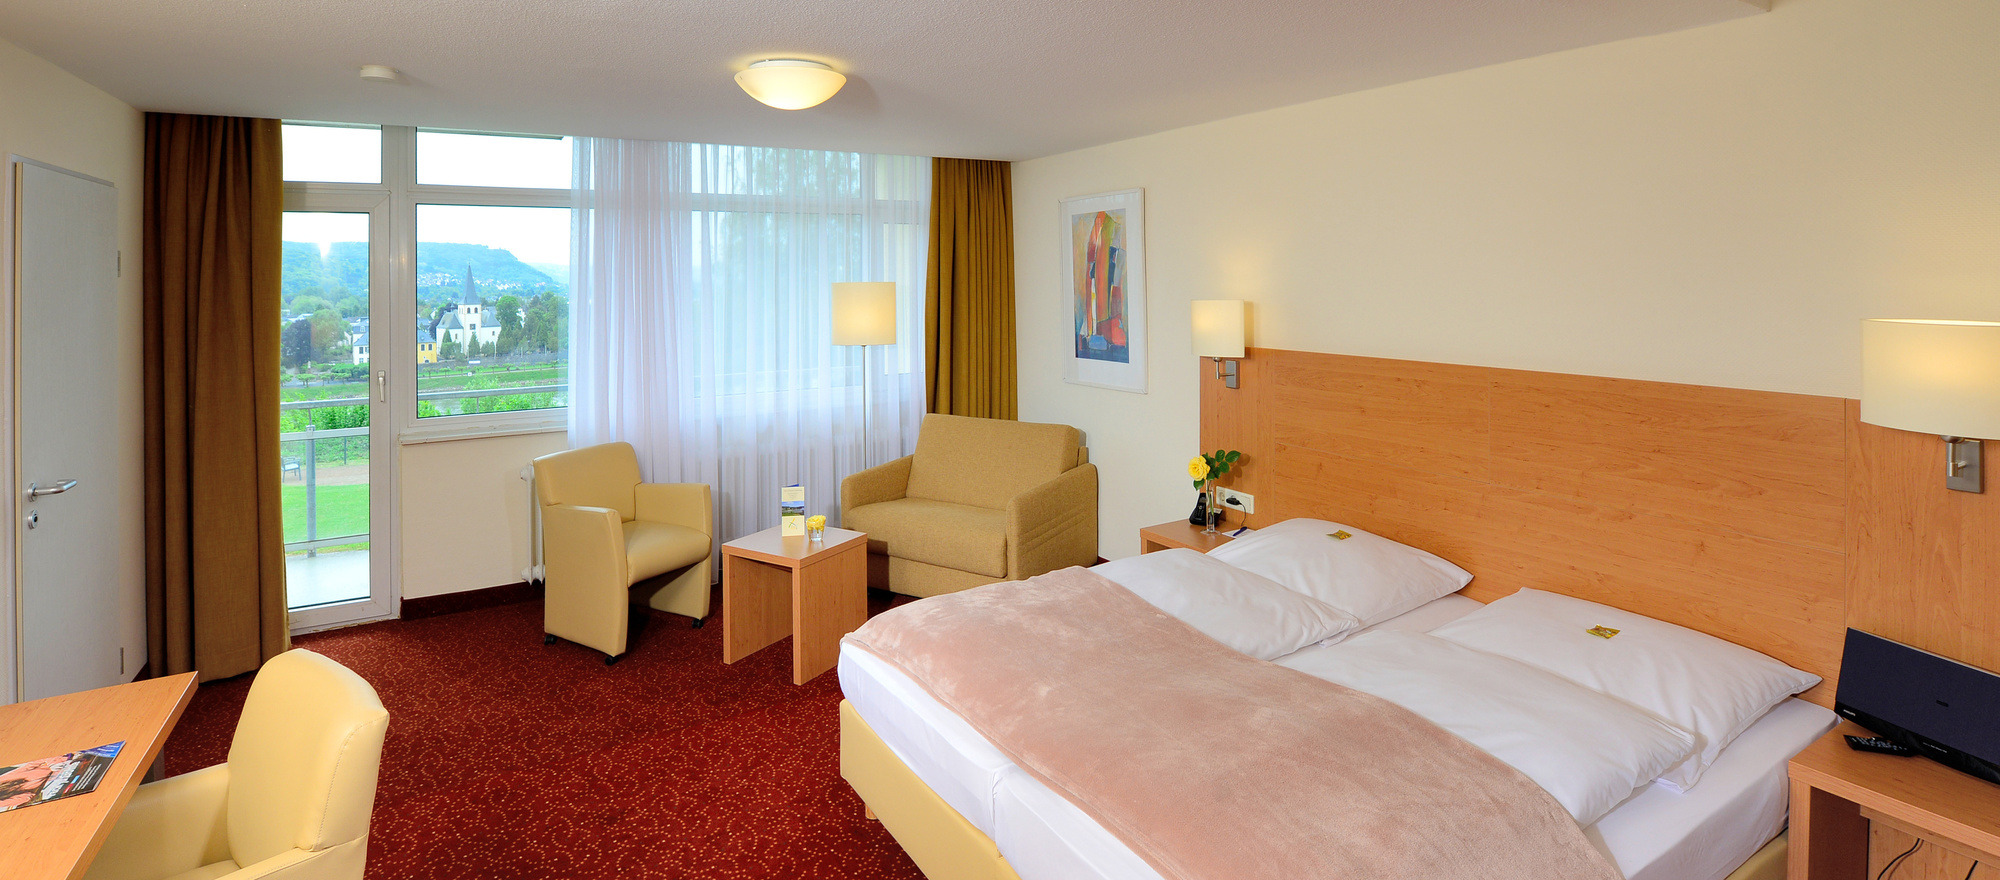 The superior deluxe double rooms are extra spacious and comfortable furnished in the 3-star-superior hotel Ringhotel Haus Oberwinter in Remagen/Bonn